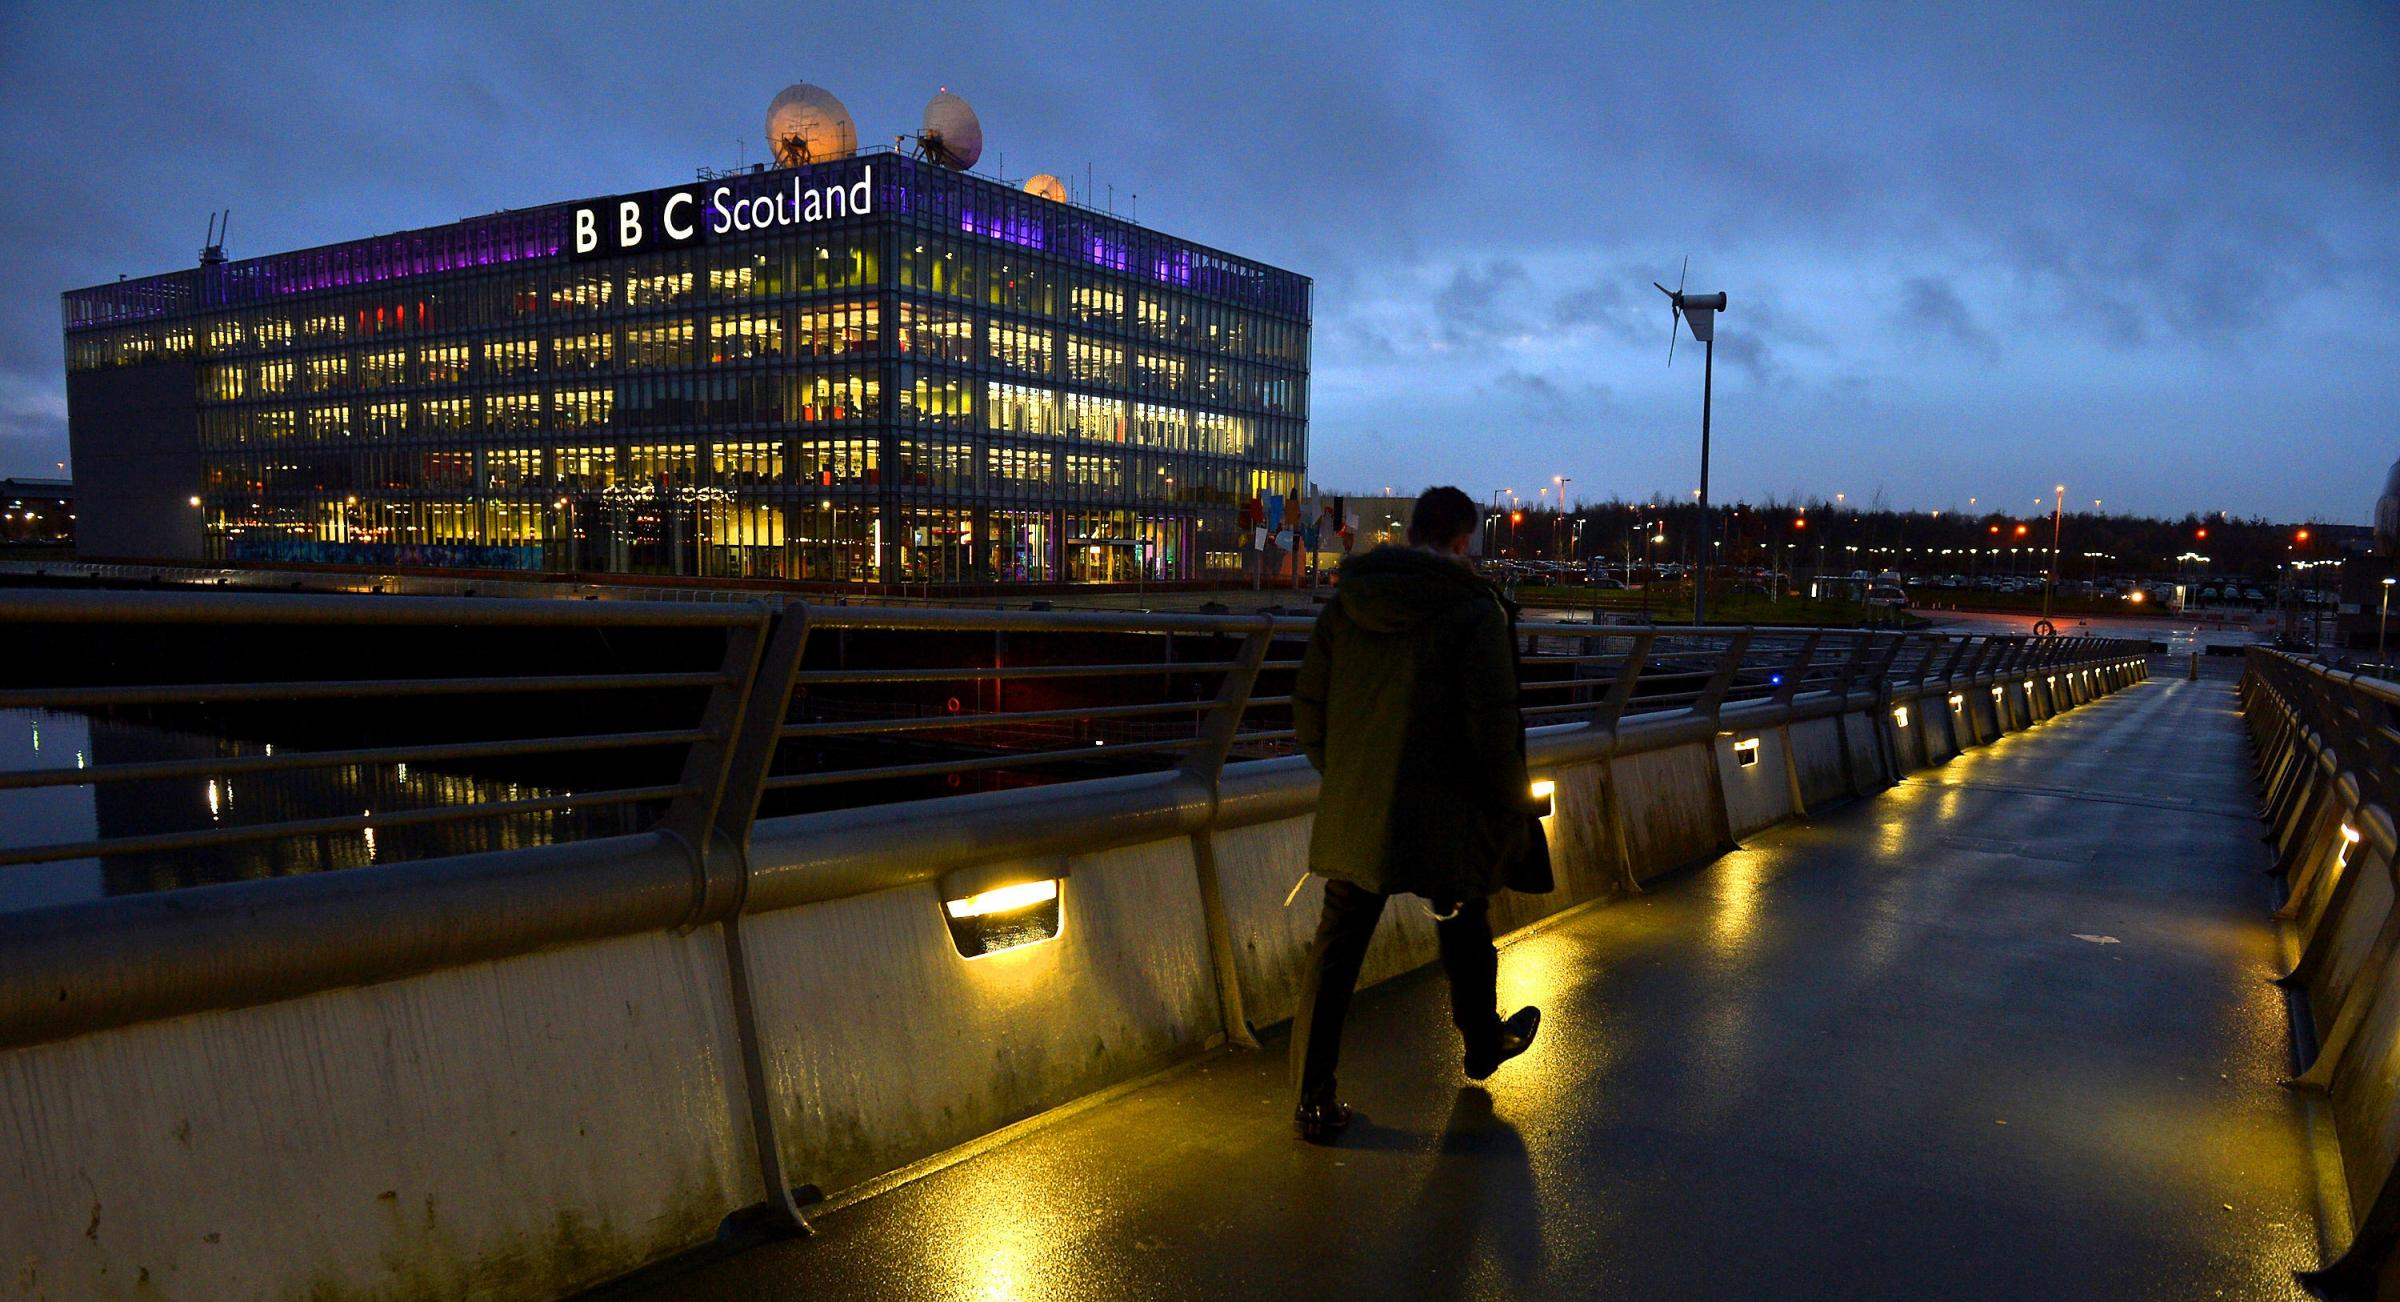 The new BBC Scotland channel launches in February 2019